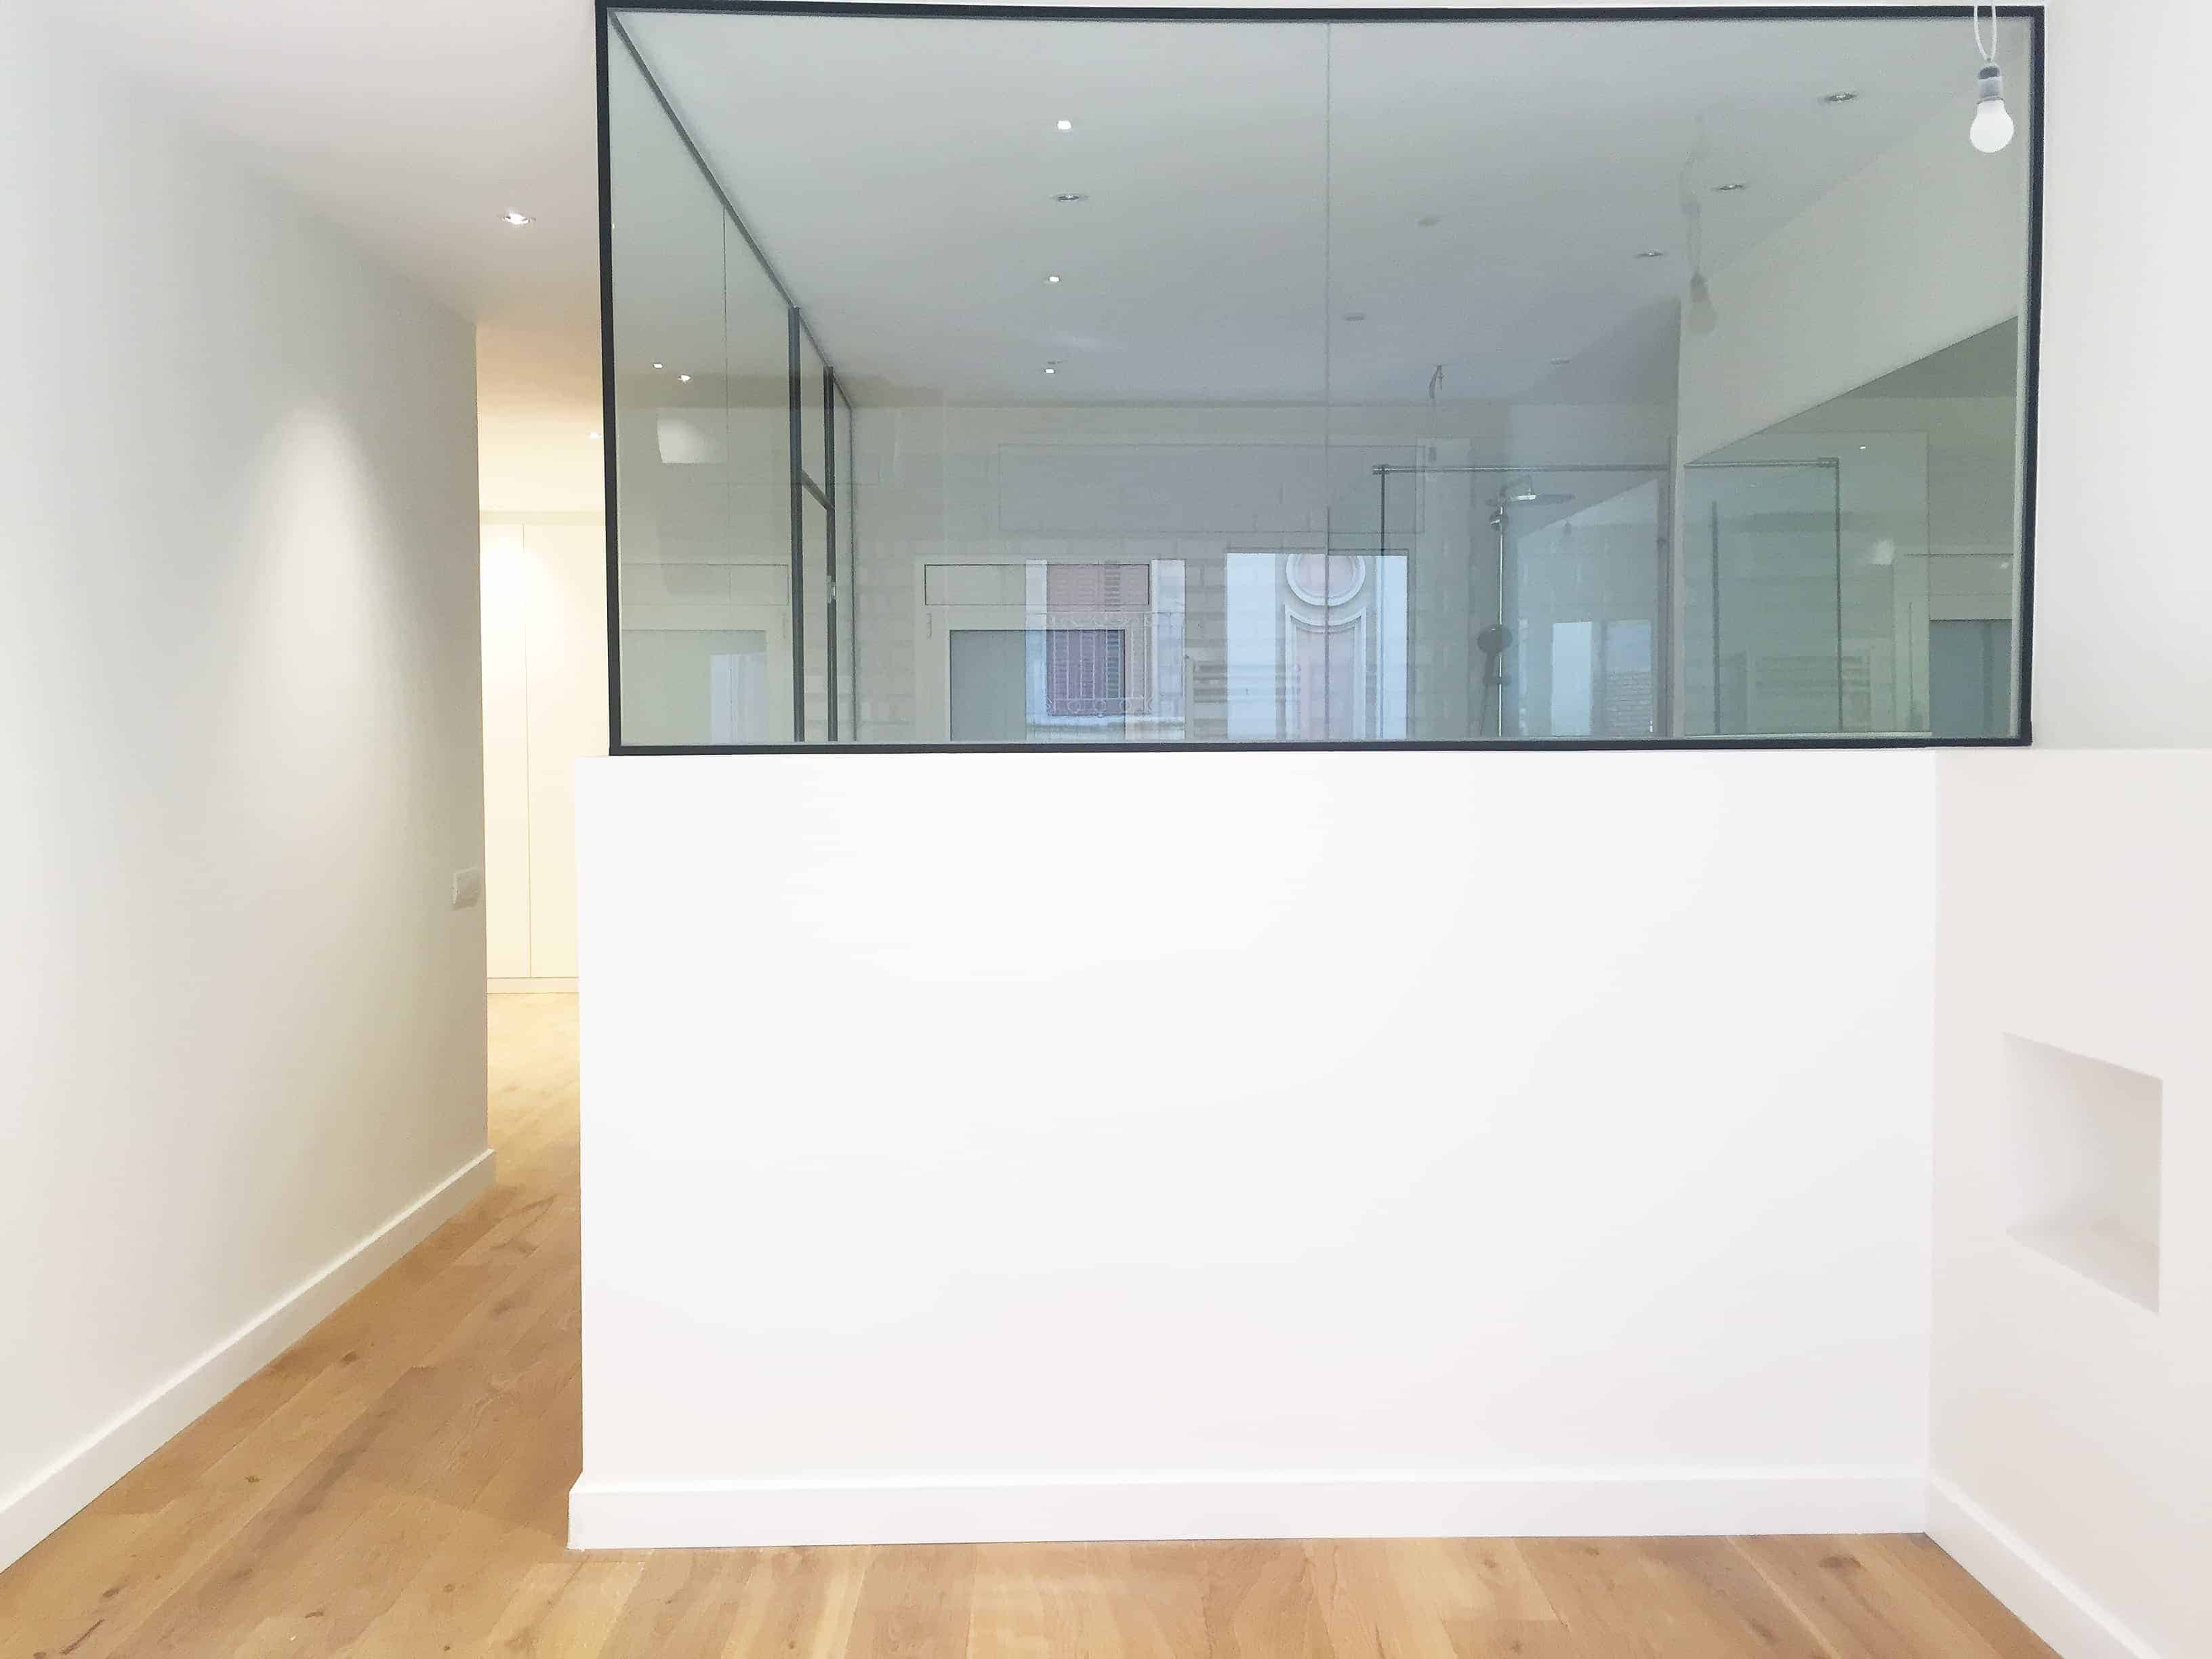 puerta transparente bano rector ubach contract solutions